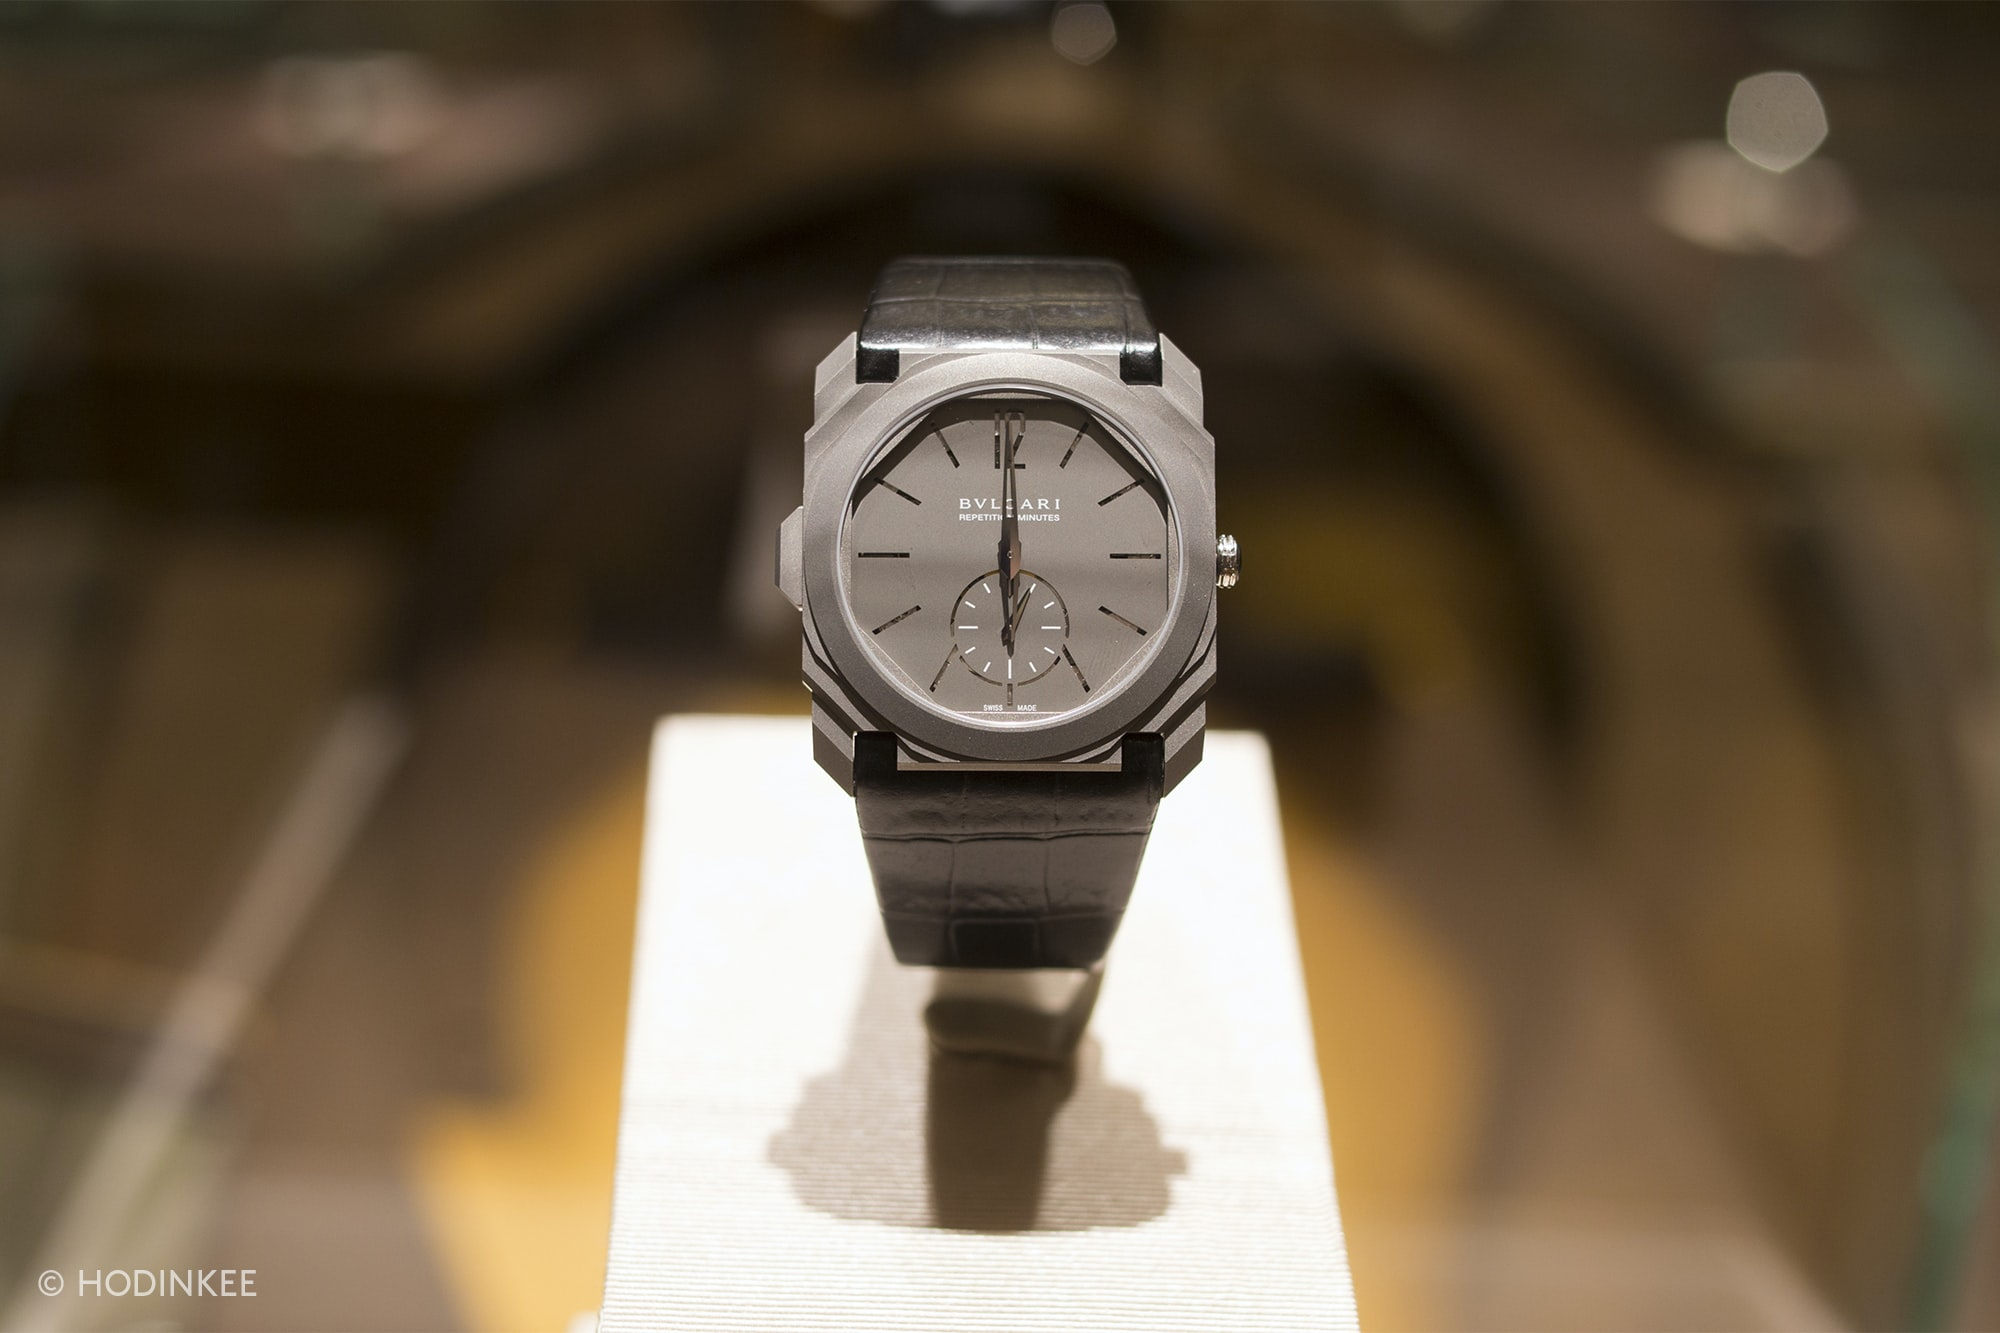 Photo Report: The Bulgari x HODINKEE Celebration Of The Octo Finissimo Minute Repeater In New York City Photo Report: The Bulgari x HODINKEE Celebration Of The Octo Finissimo Minute Repeater In New York City 20019870 copy